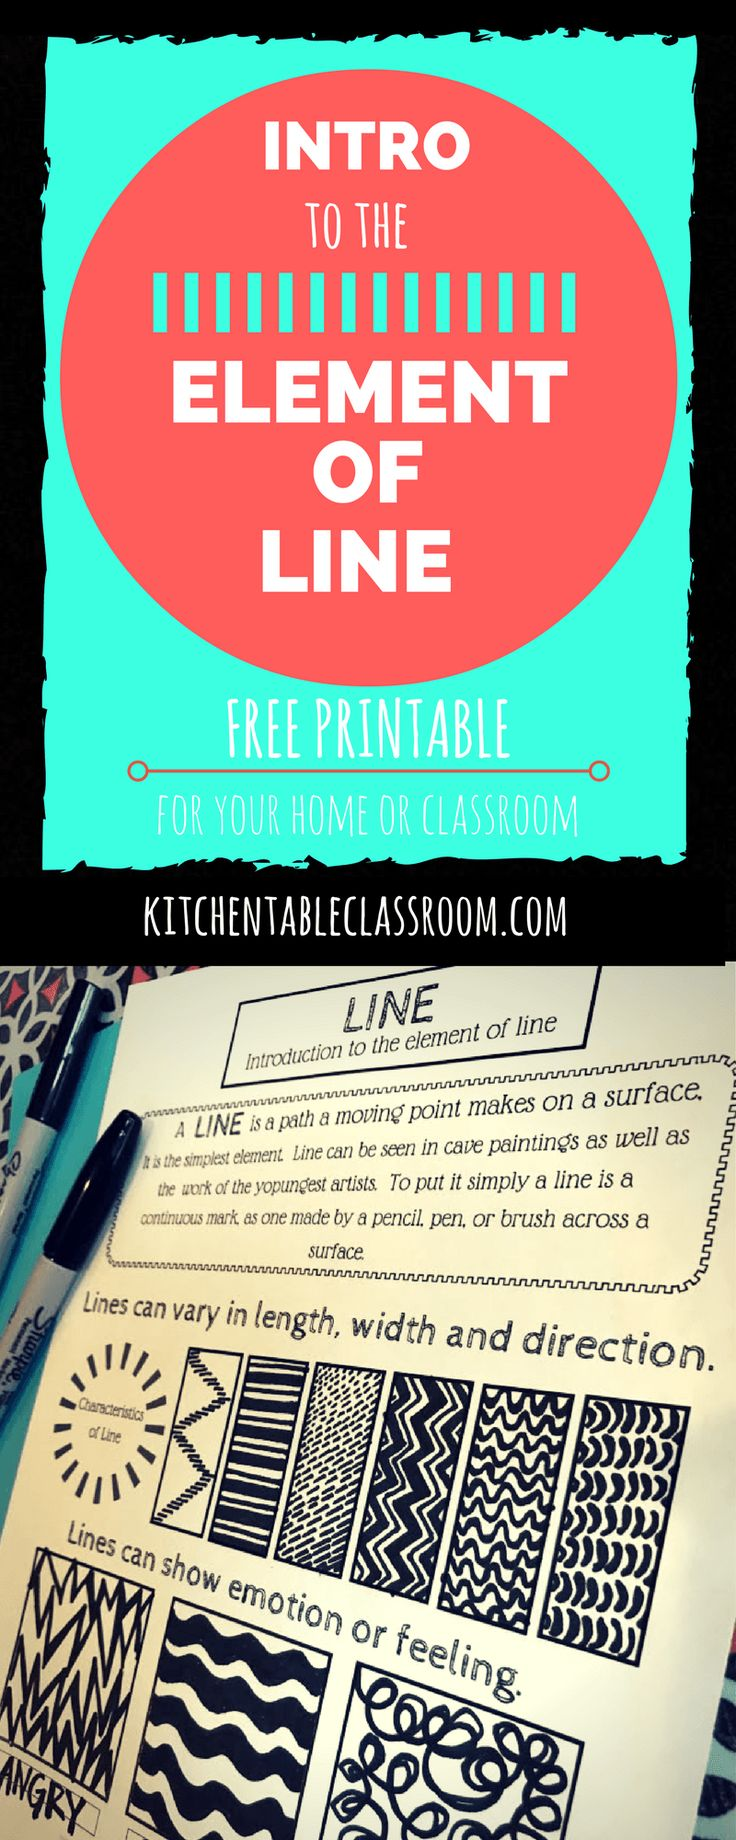 Color lines online strip game - Line In Art An Intro And Free Printable